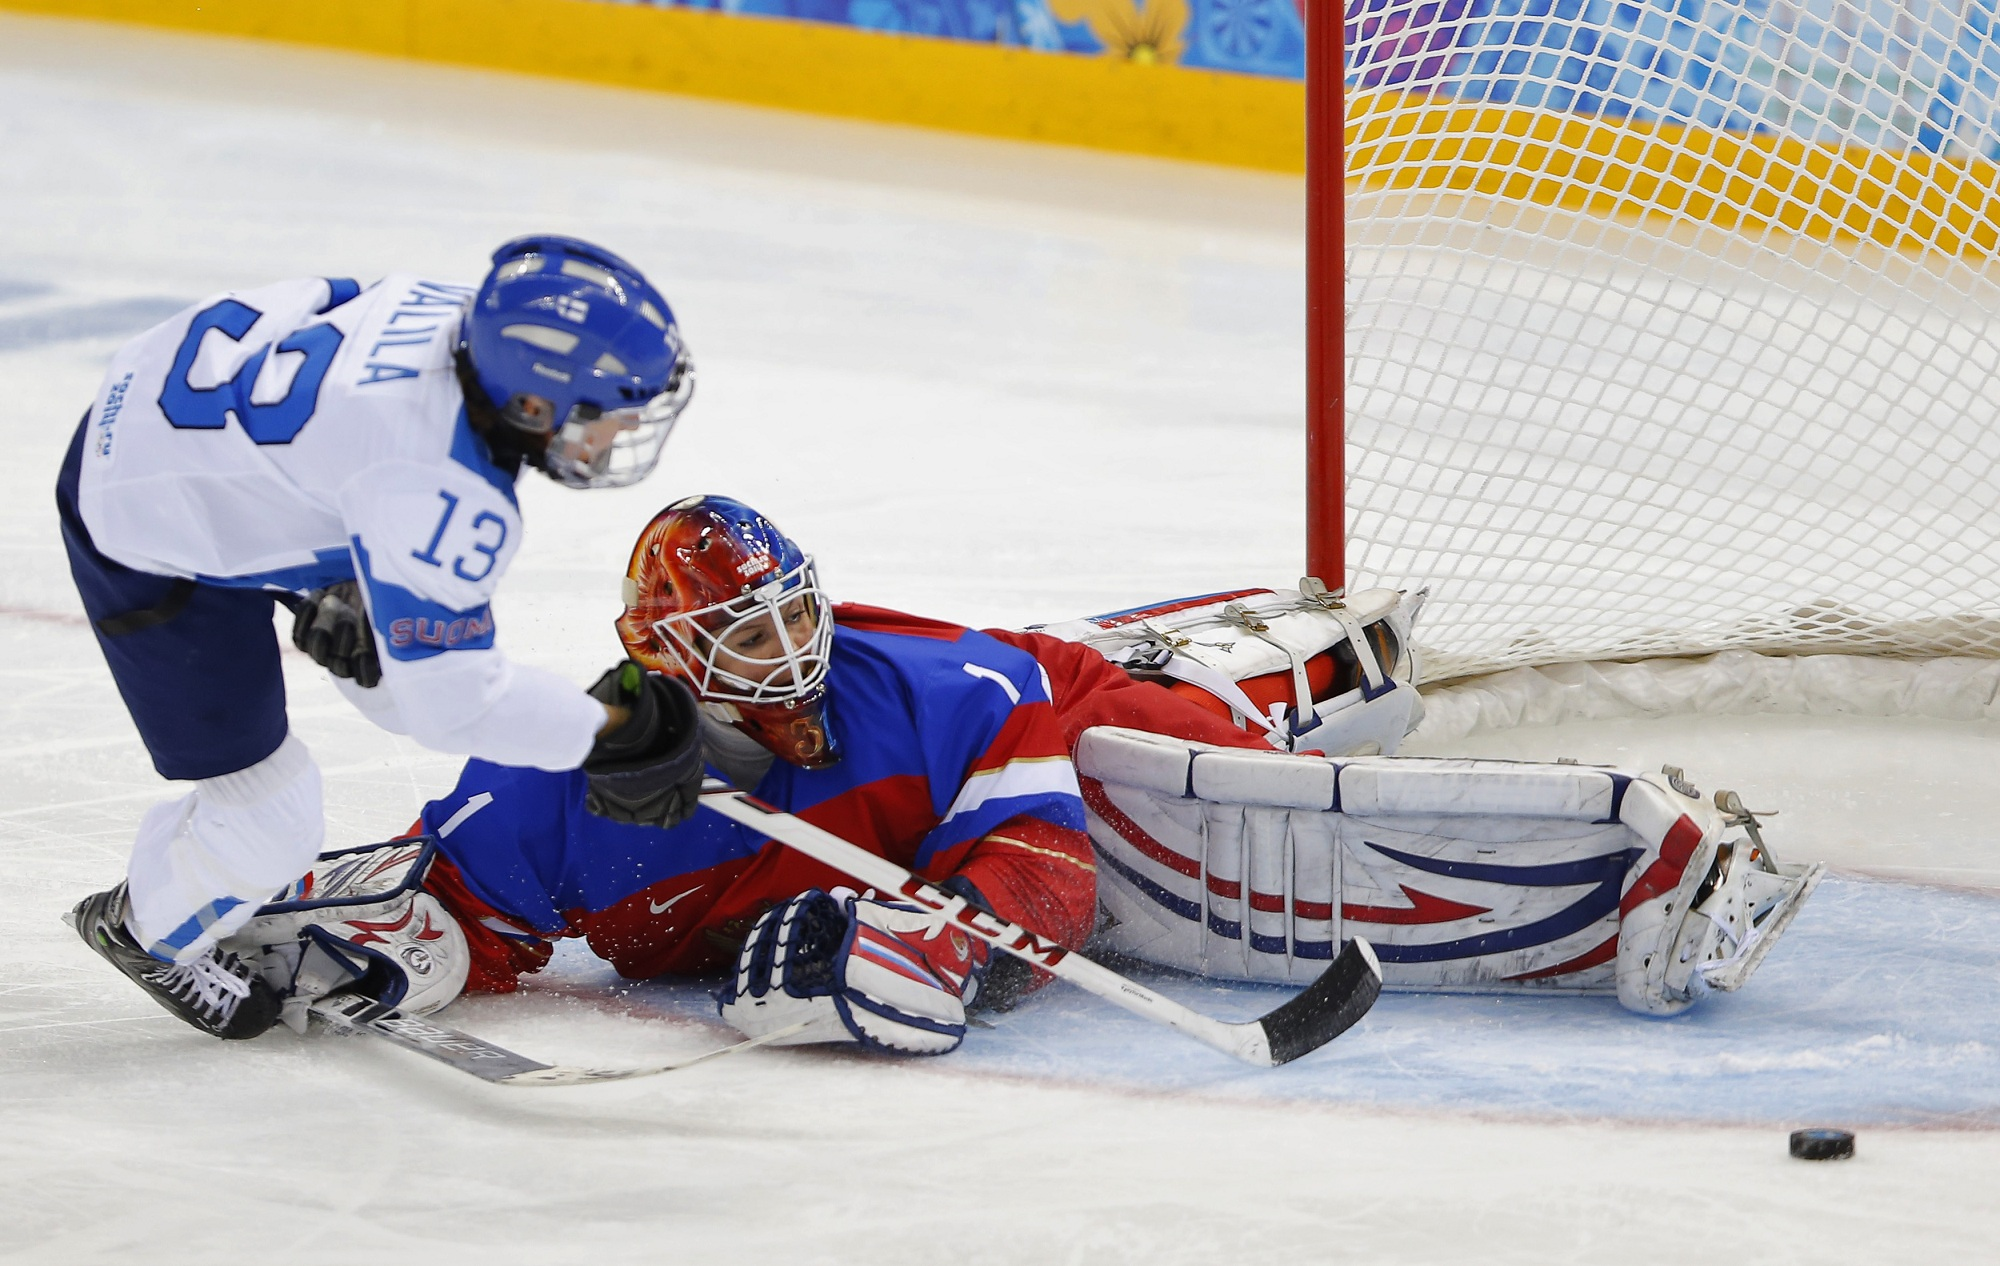 Riikka Valila (left) in action for Finland in Sochi 2014 | Photo courtesy: Reuters